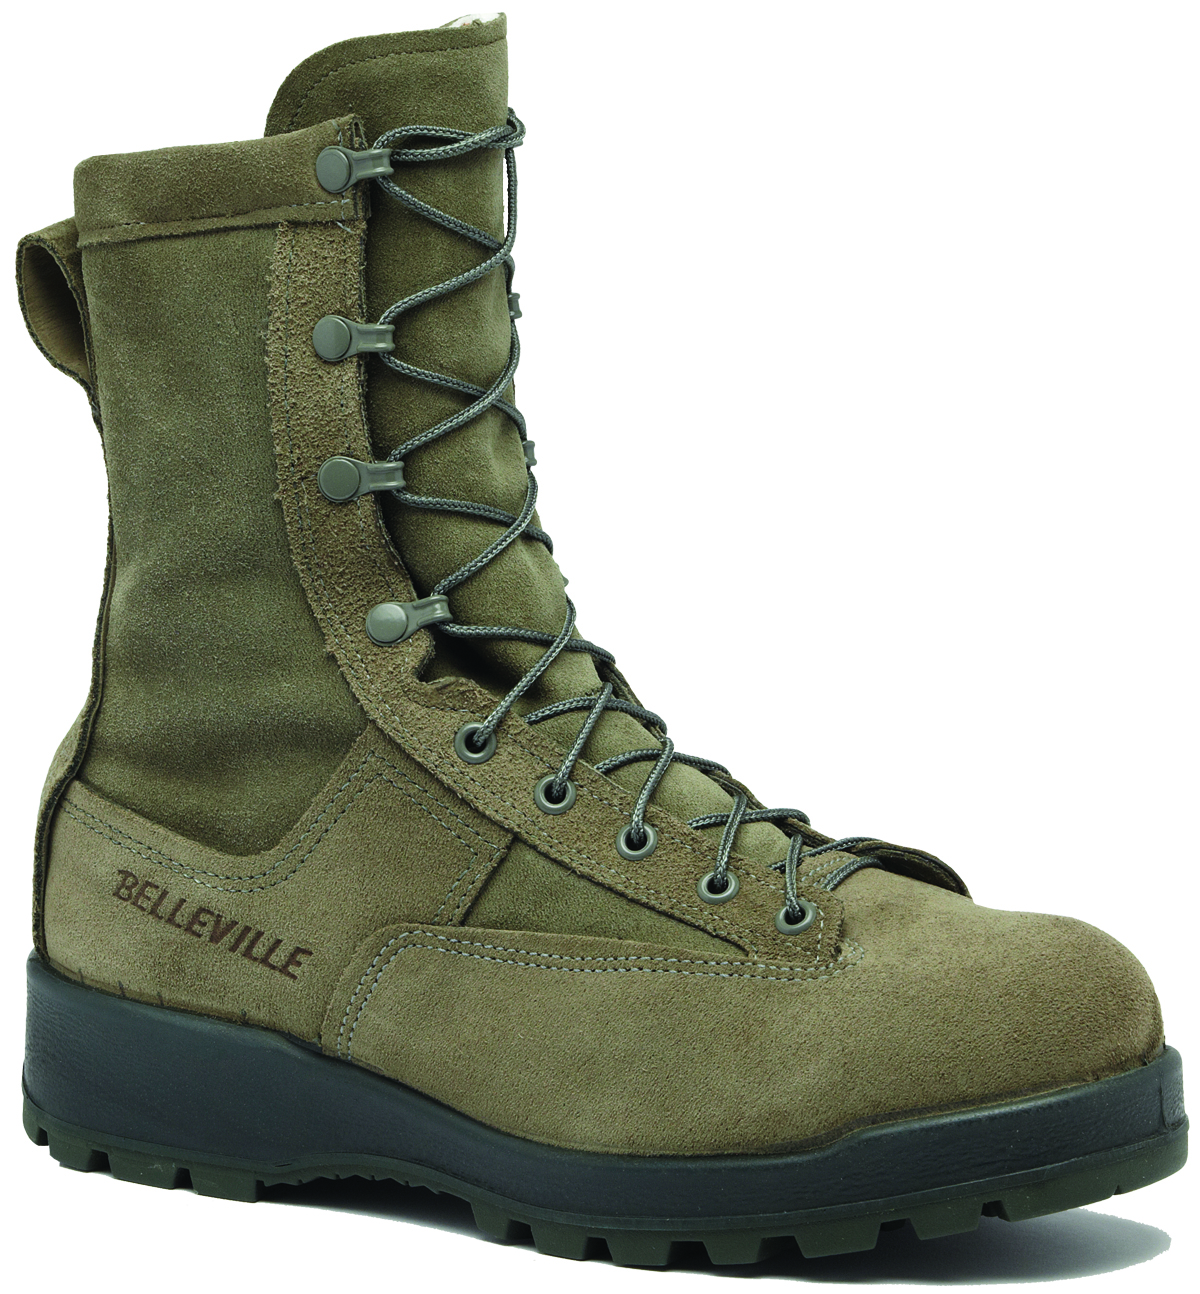 Belleville Safety & Steel Toe Boots - Free Shipping & Size Exchanges